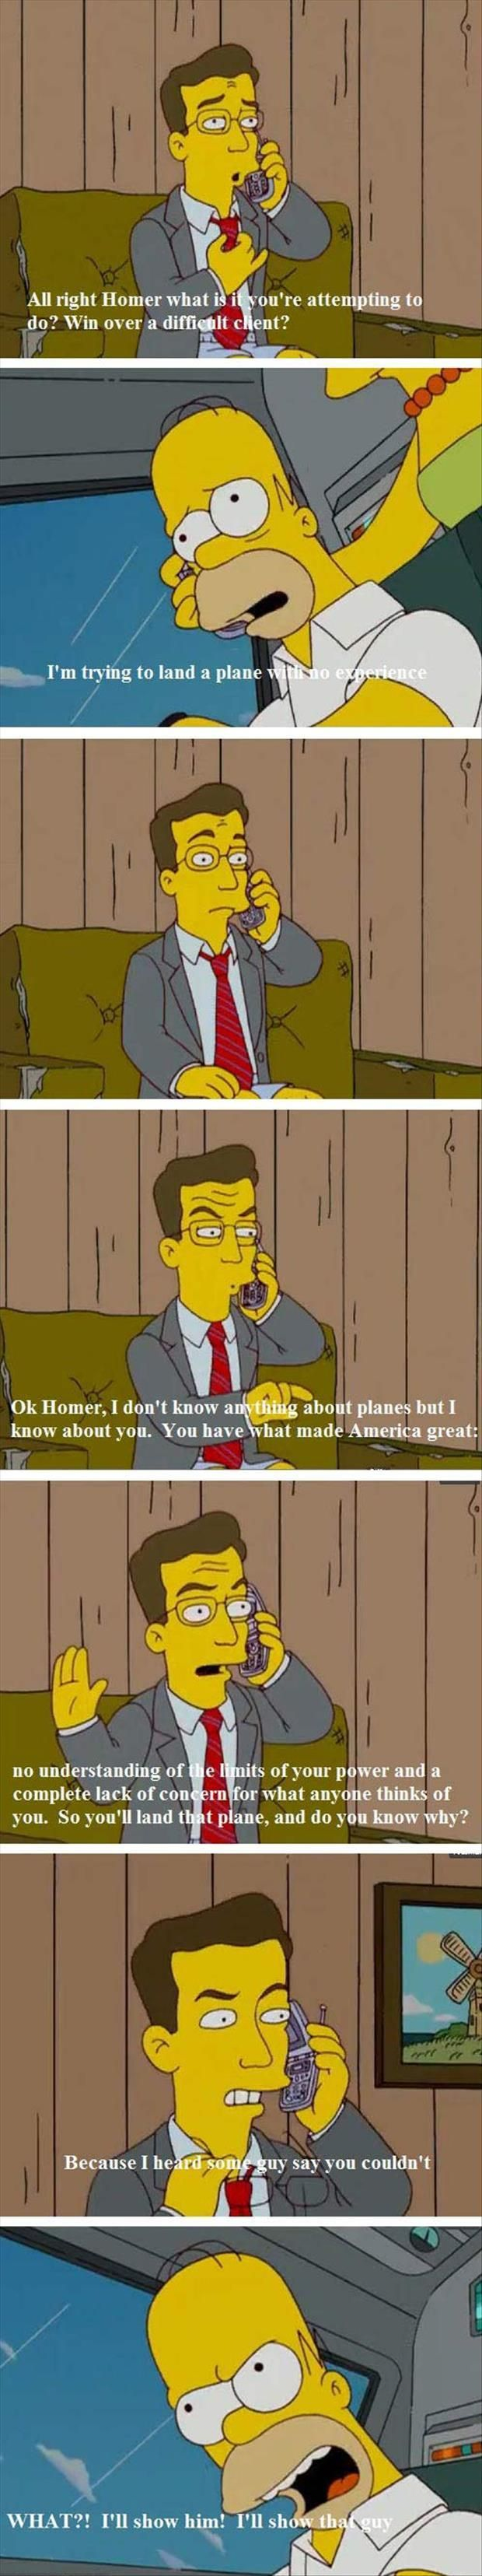 How to get Homer to land a plane spark up his determination to prove someone wrong.